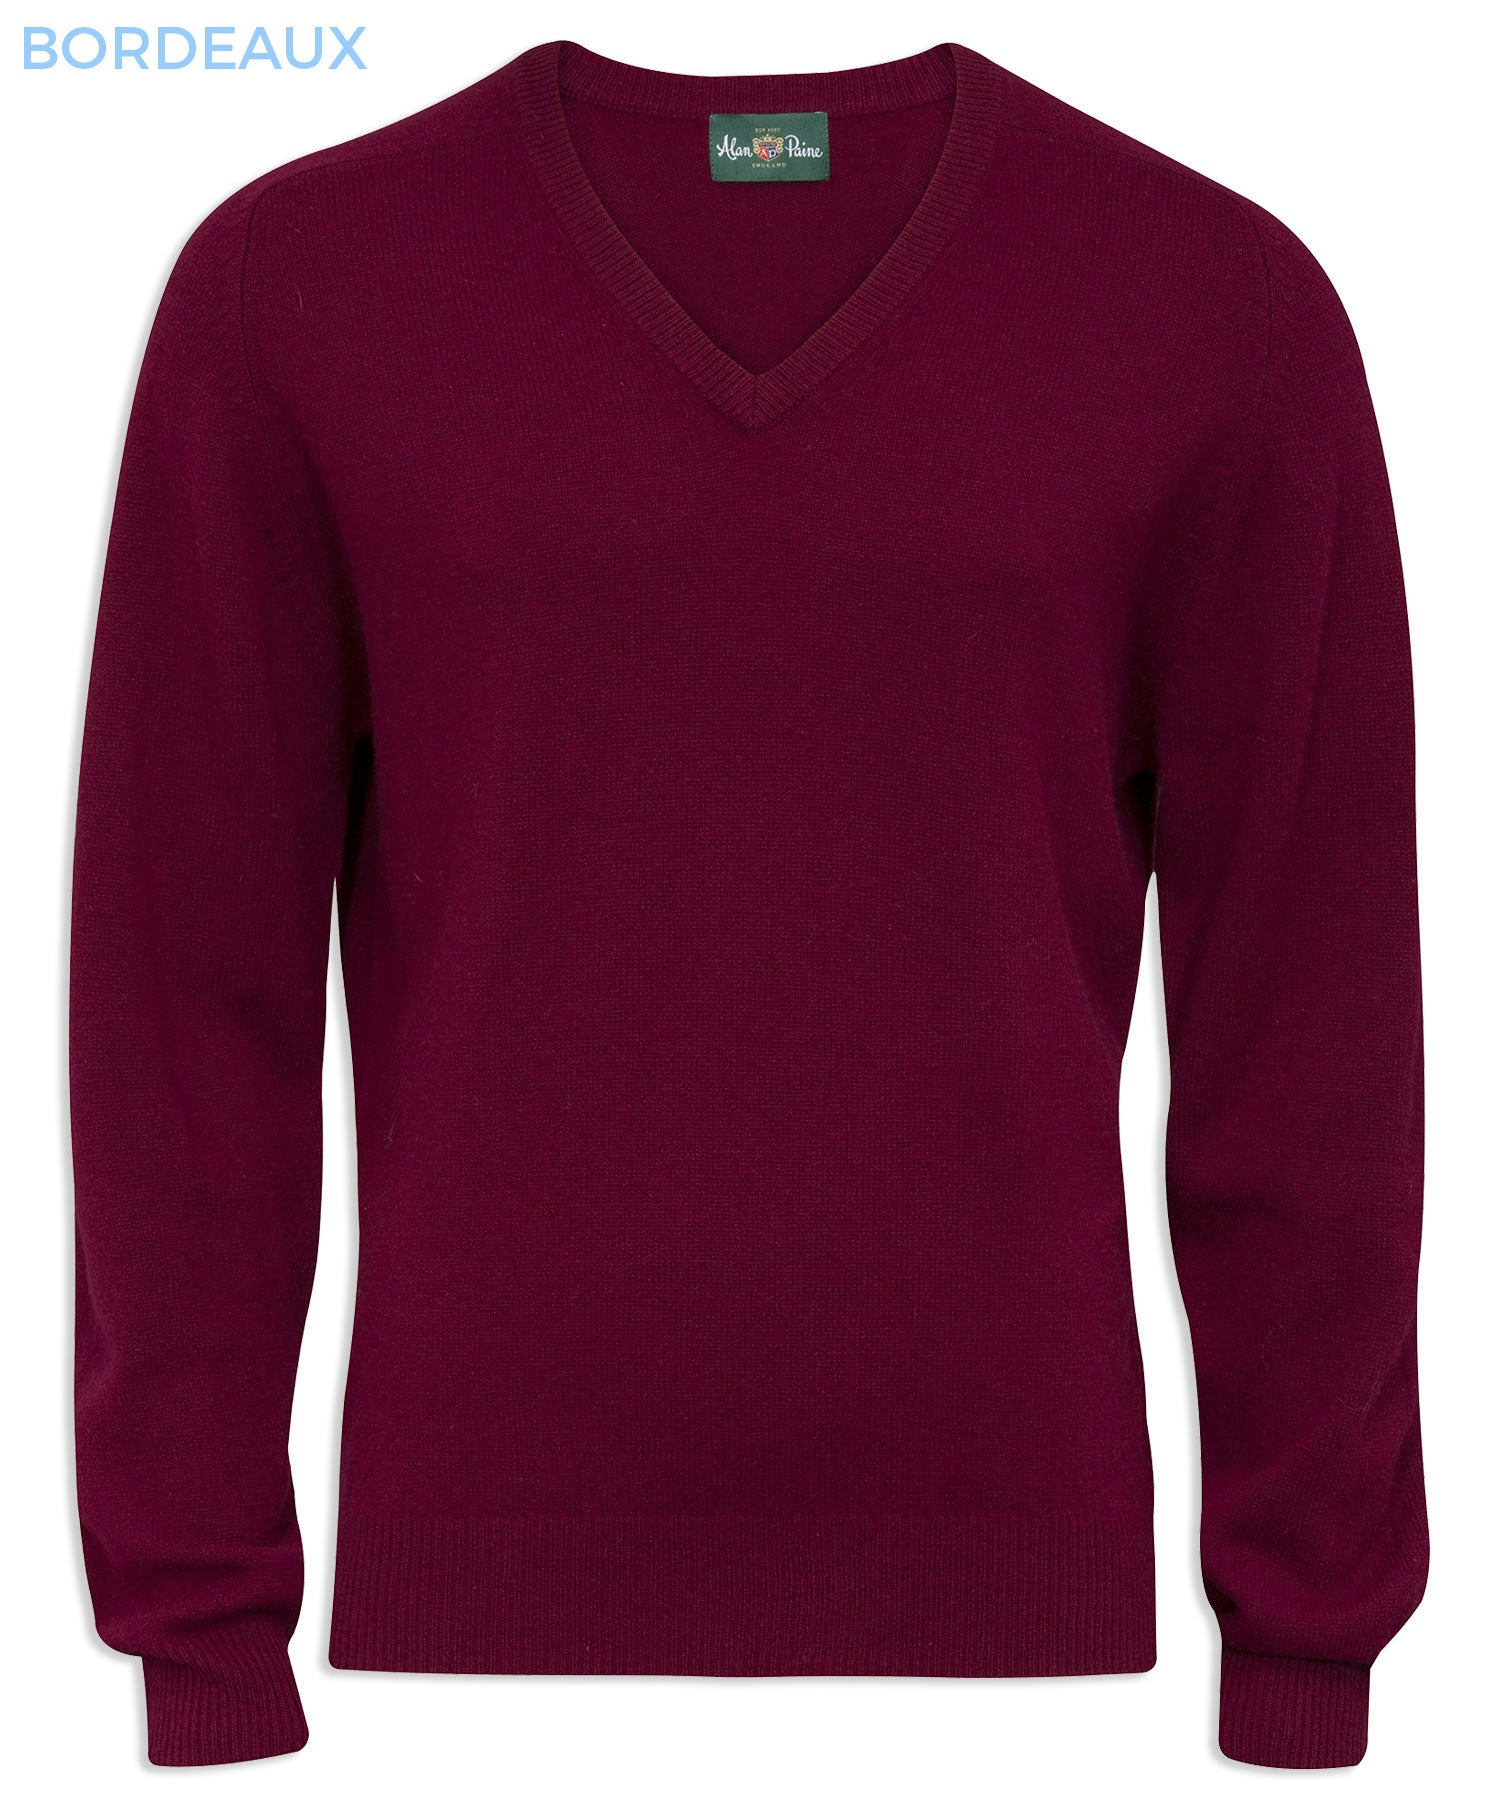 Bordeaux wine red Burford Men's Lambswool V Neck Sweater - Classic Fit